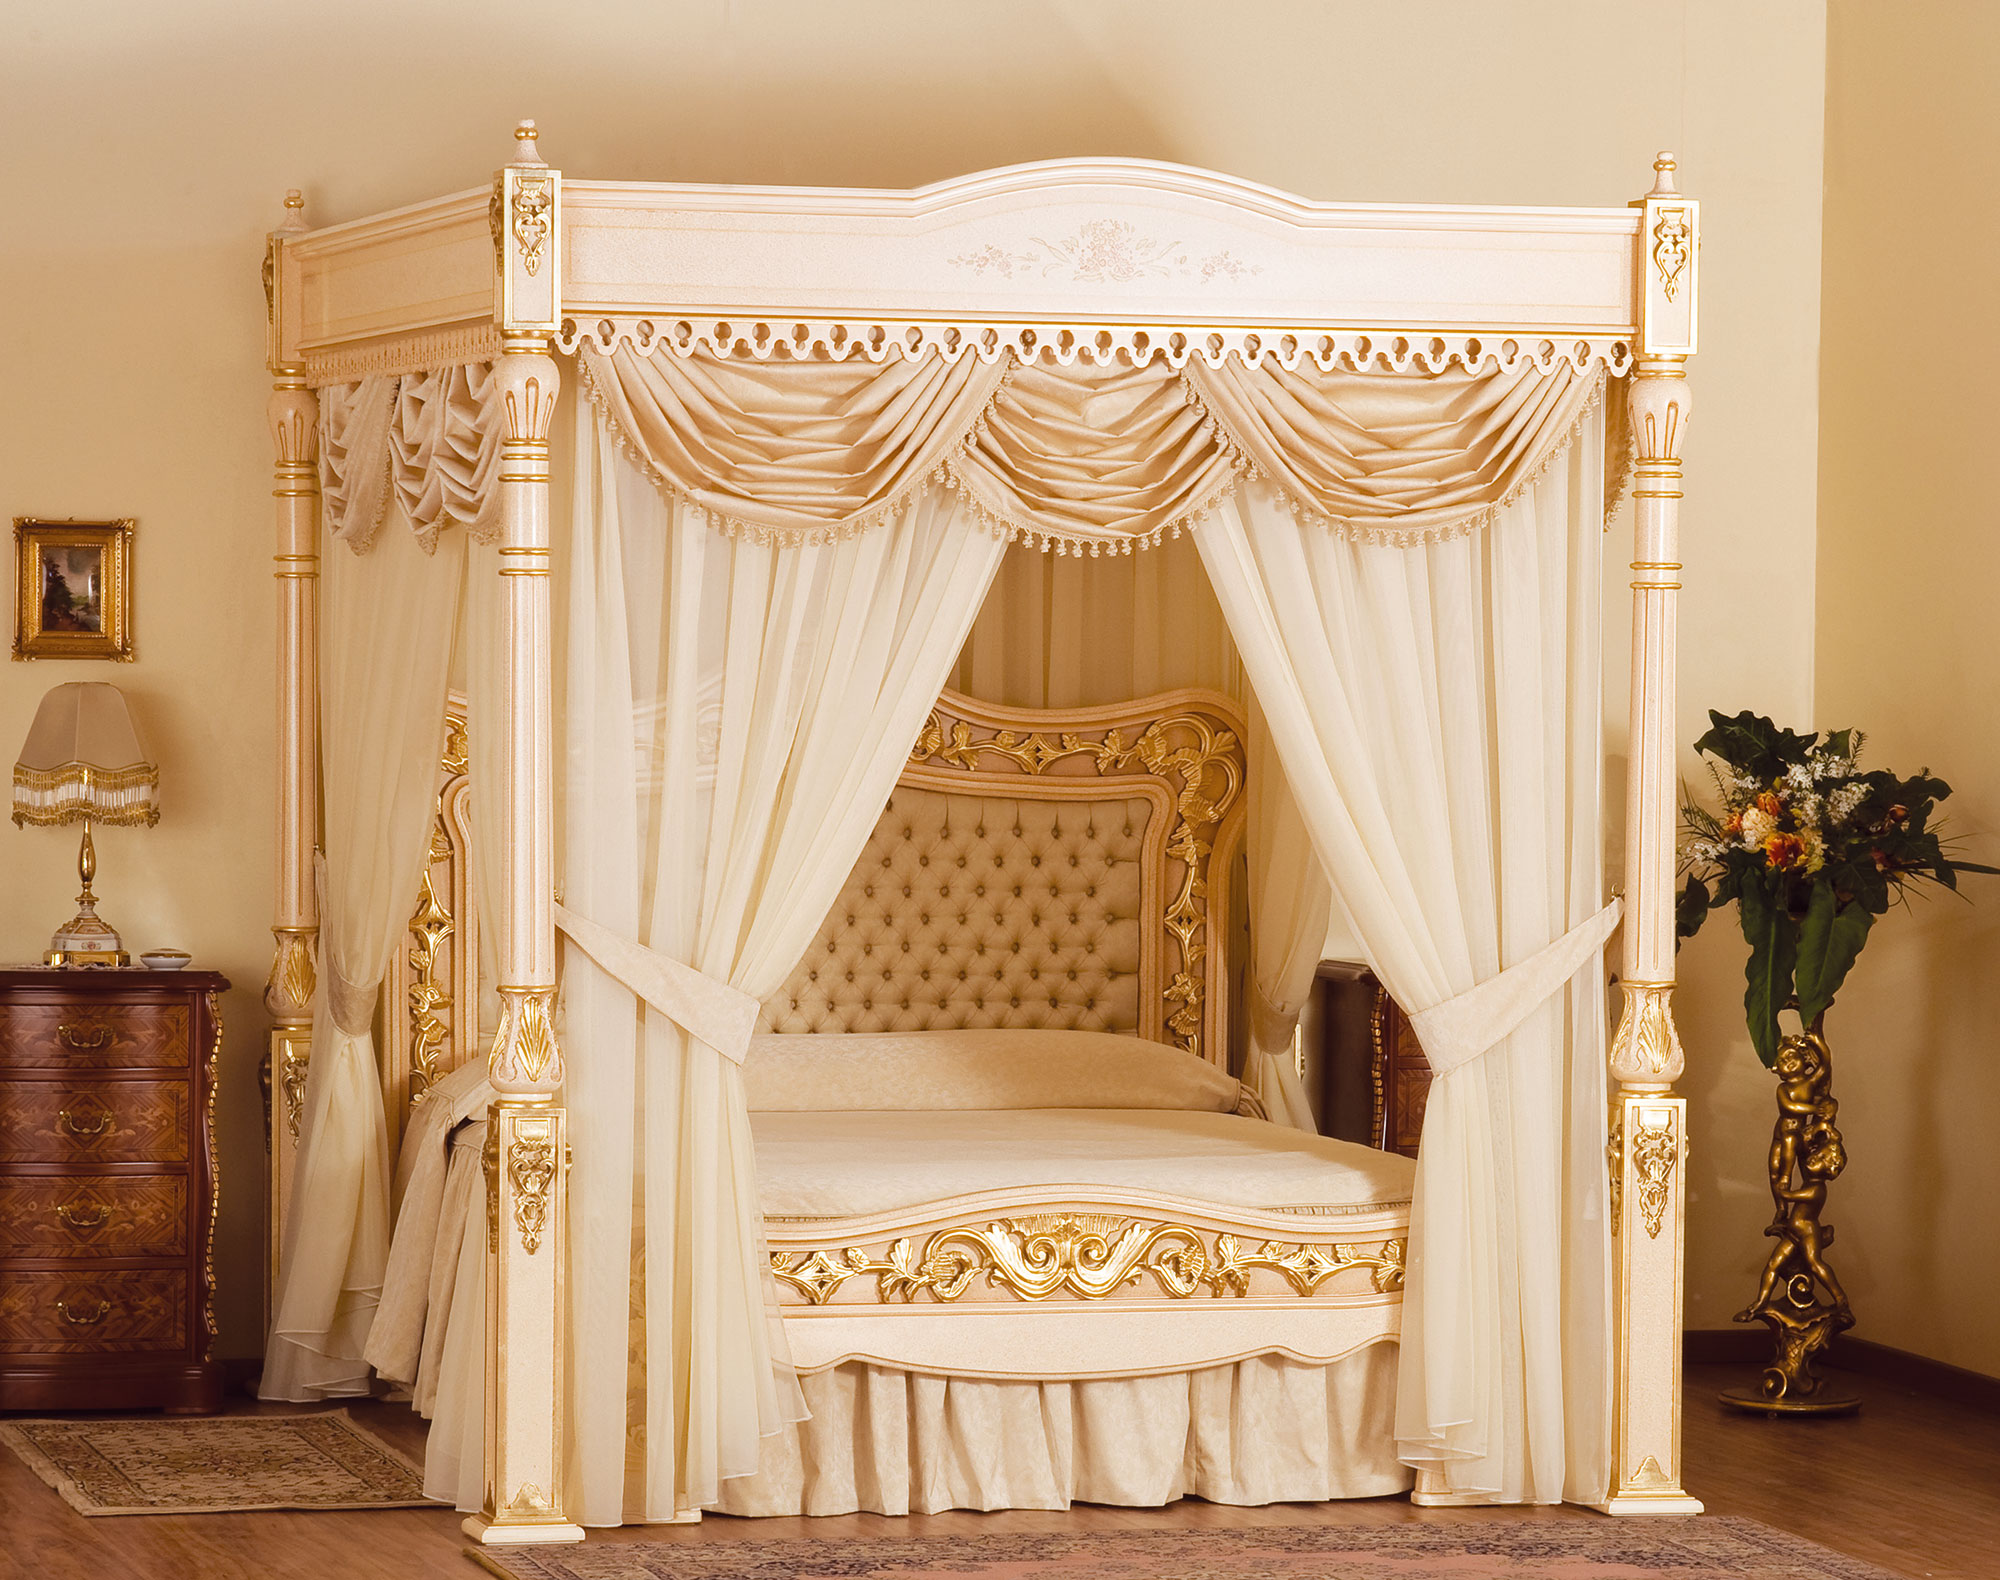 Baldacchino Supreme  The world most exclusive bed